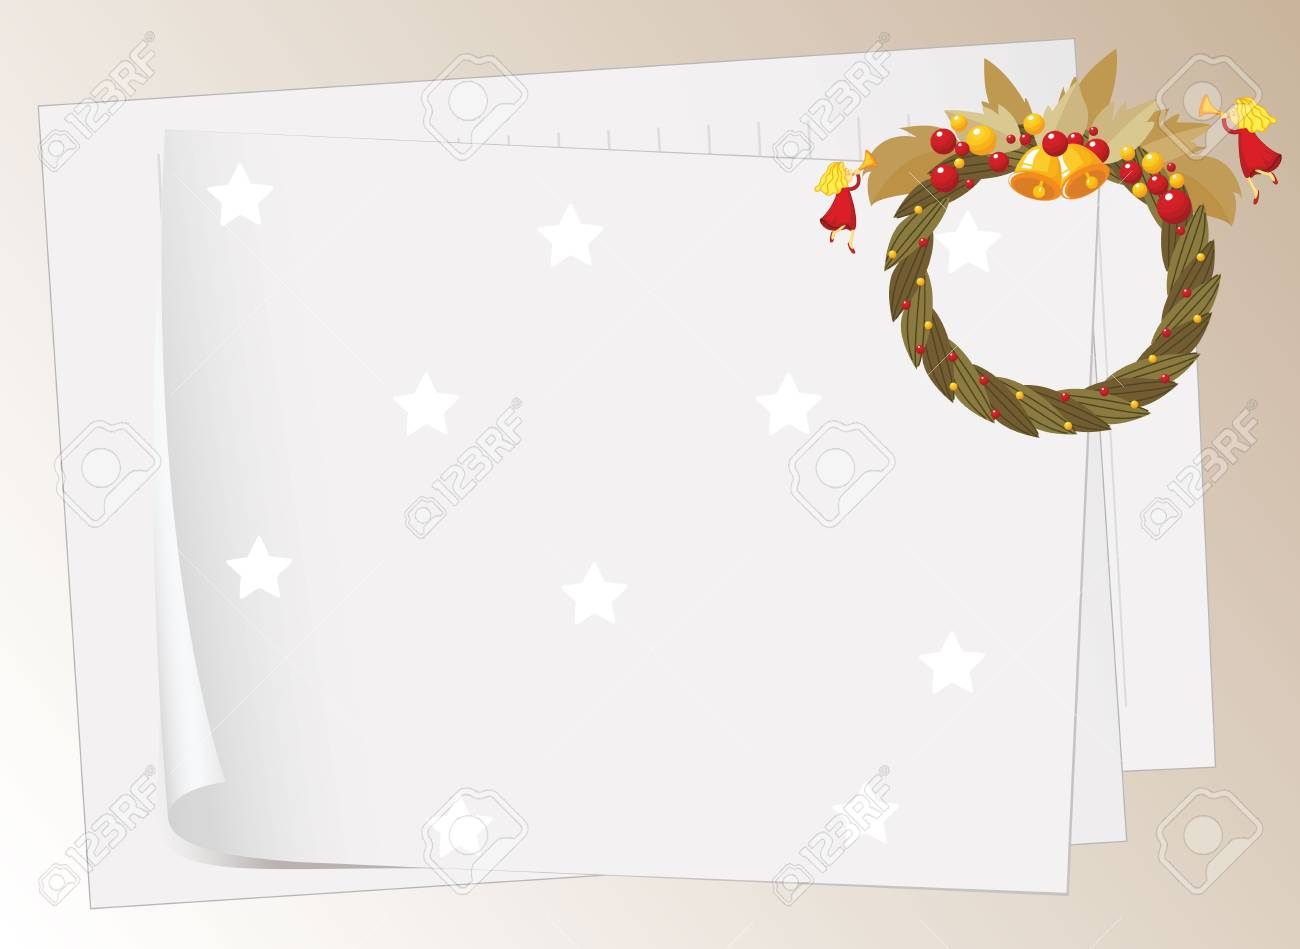 illustration of paper sheets and bells on a white background Stock Vector - 16140941